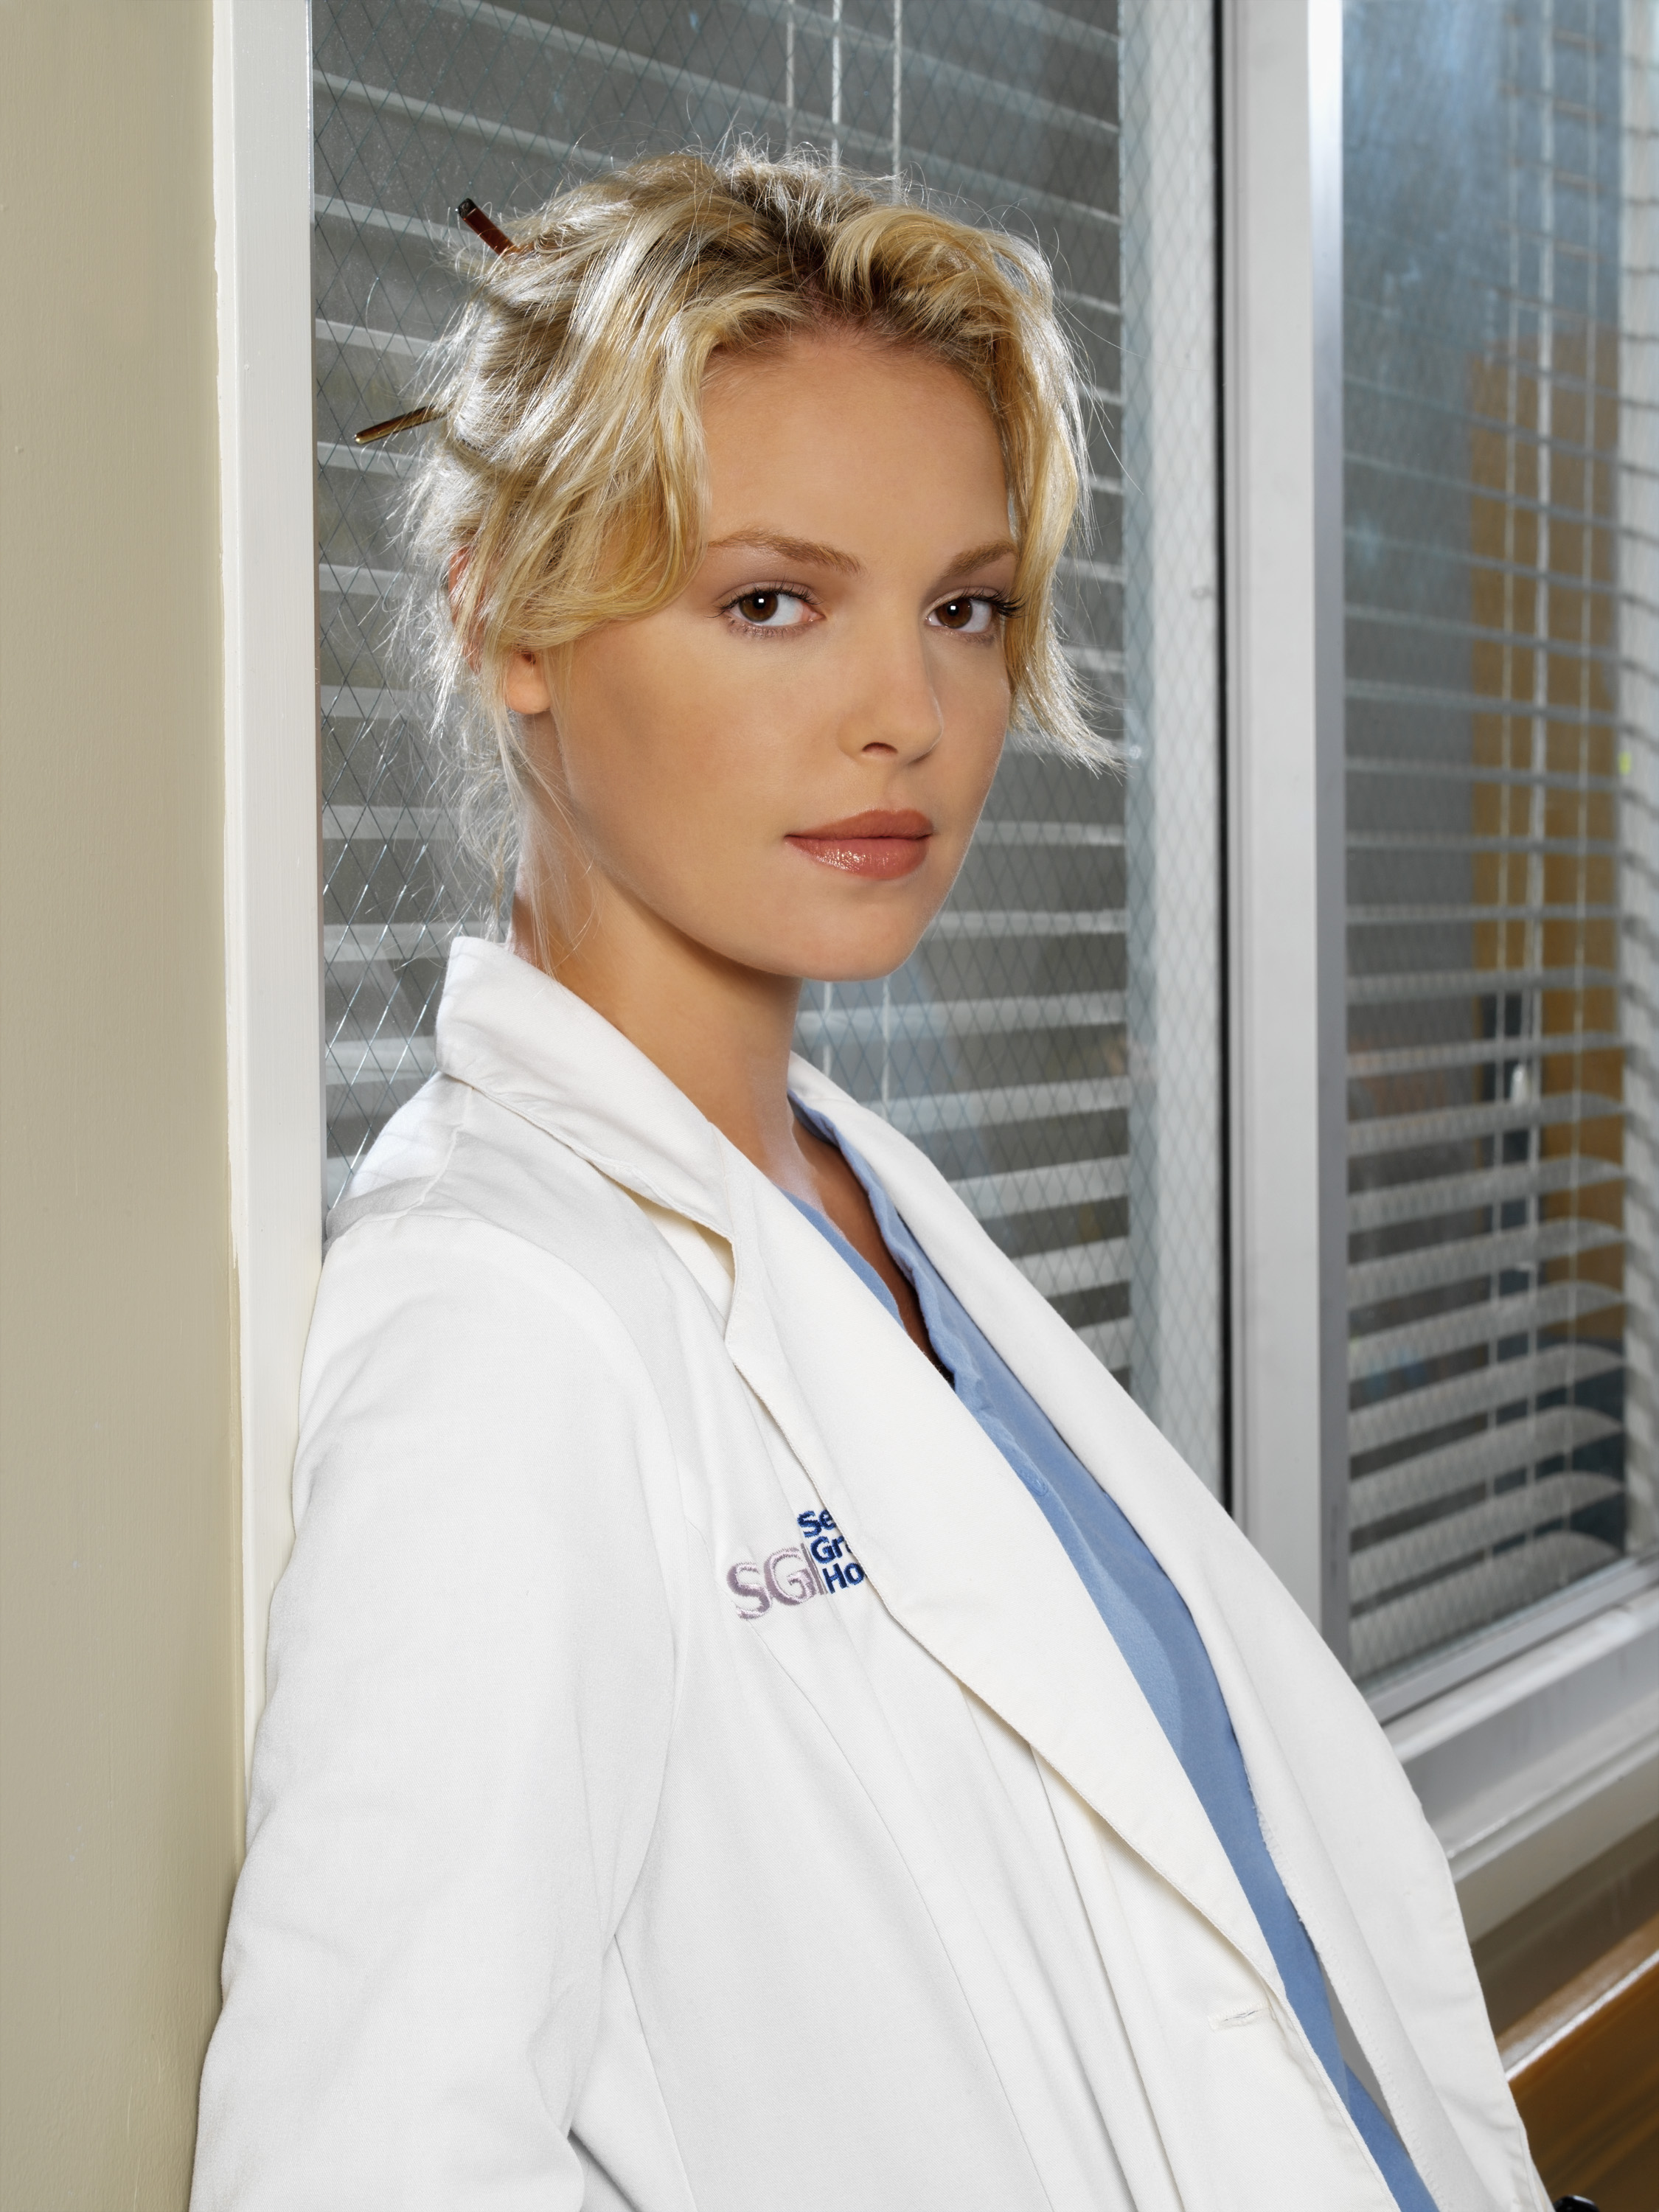 Izzie Stevens Grey's Anatomy Getty Images